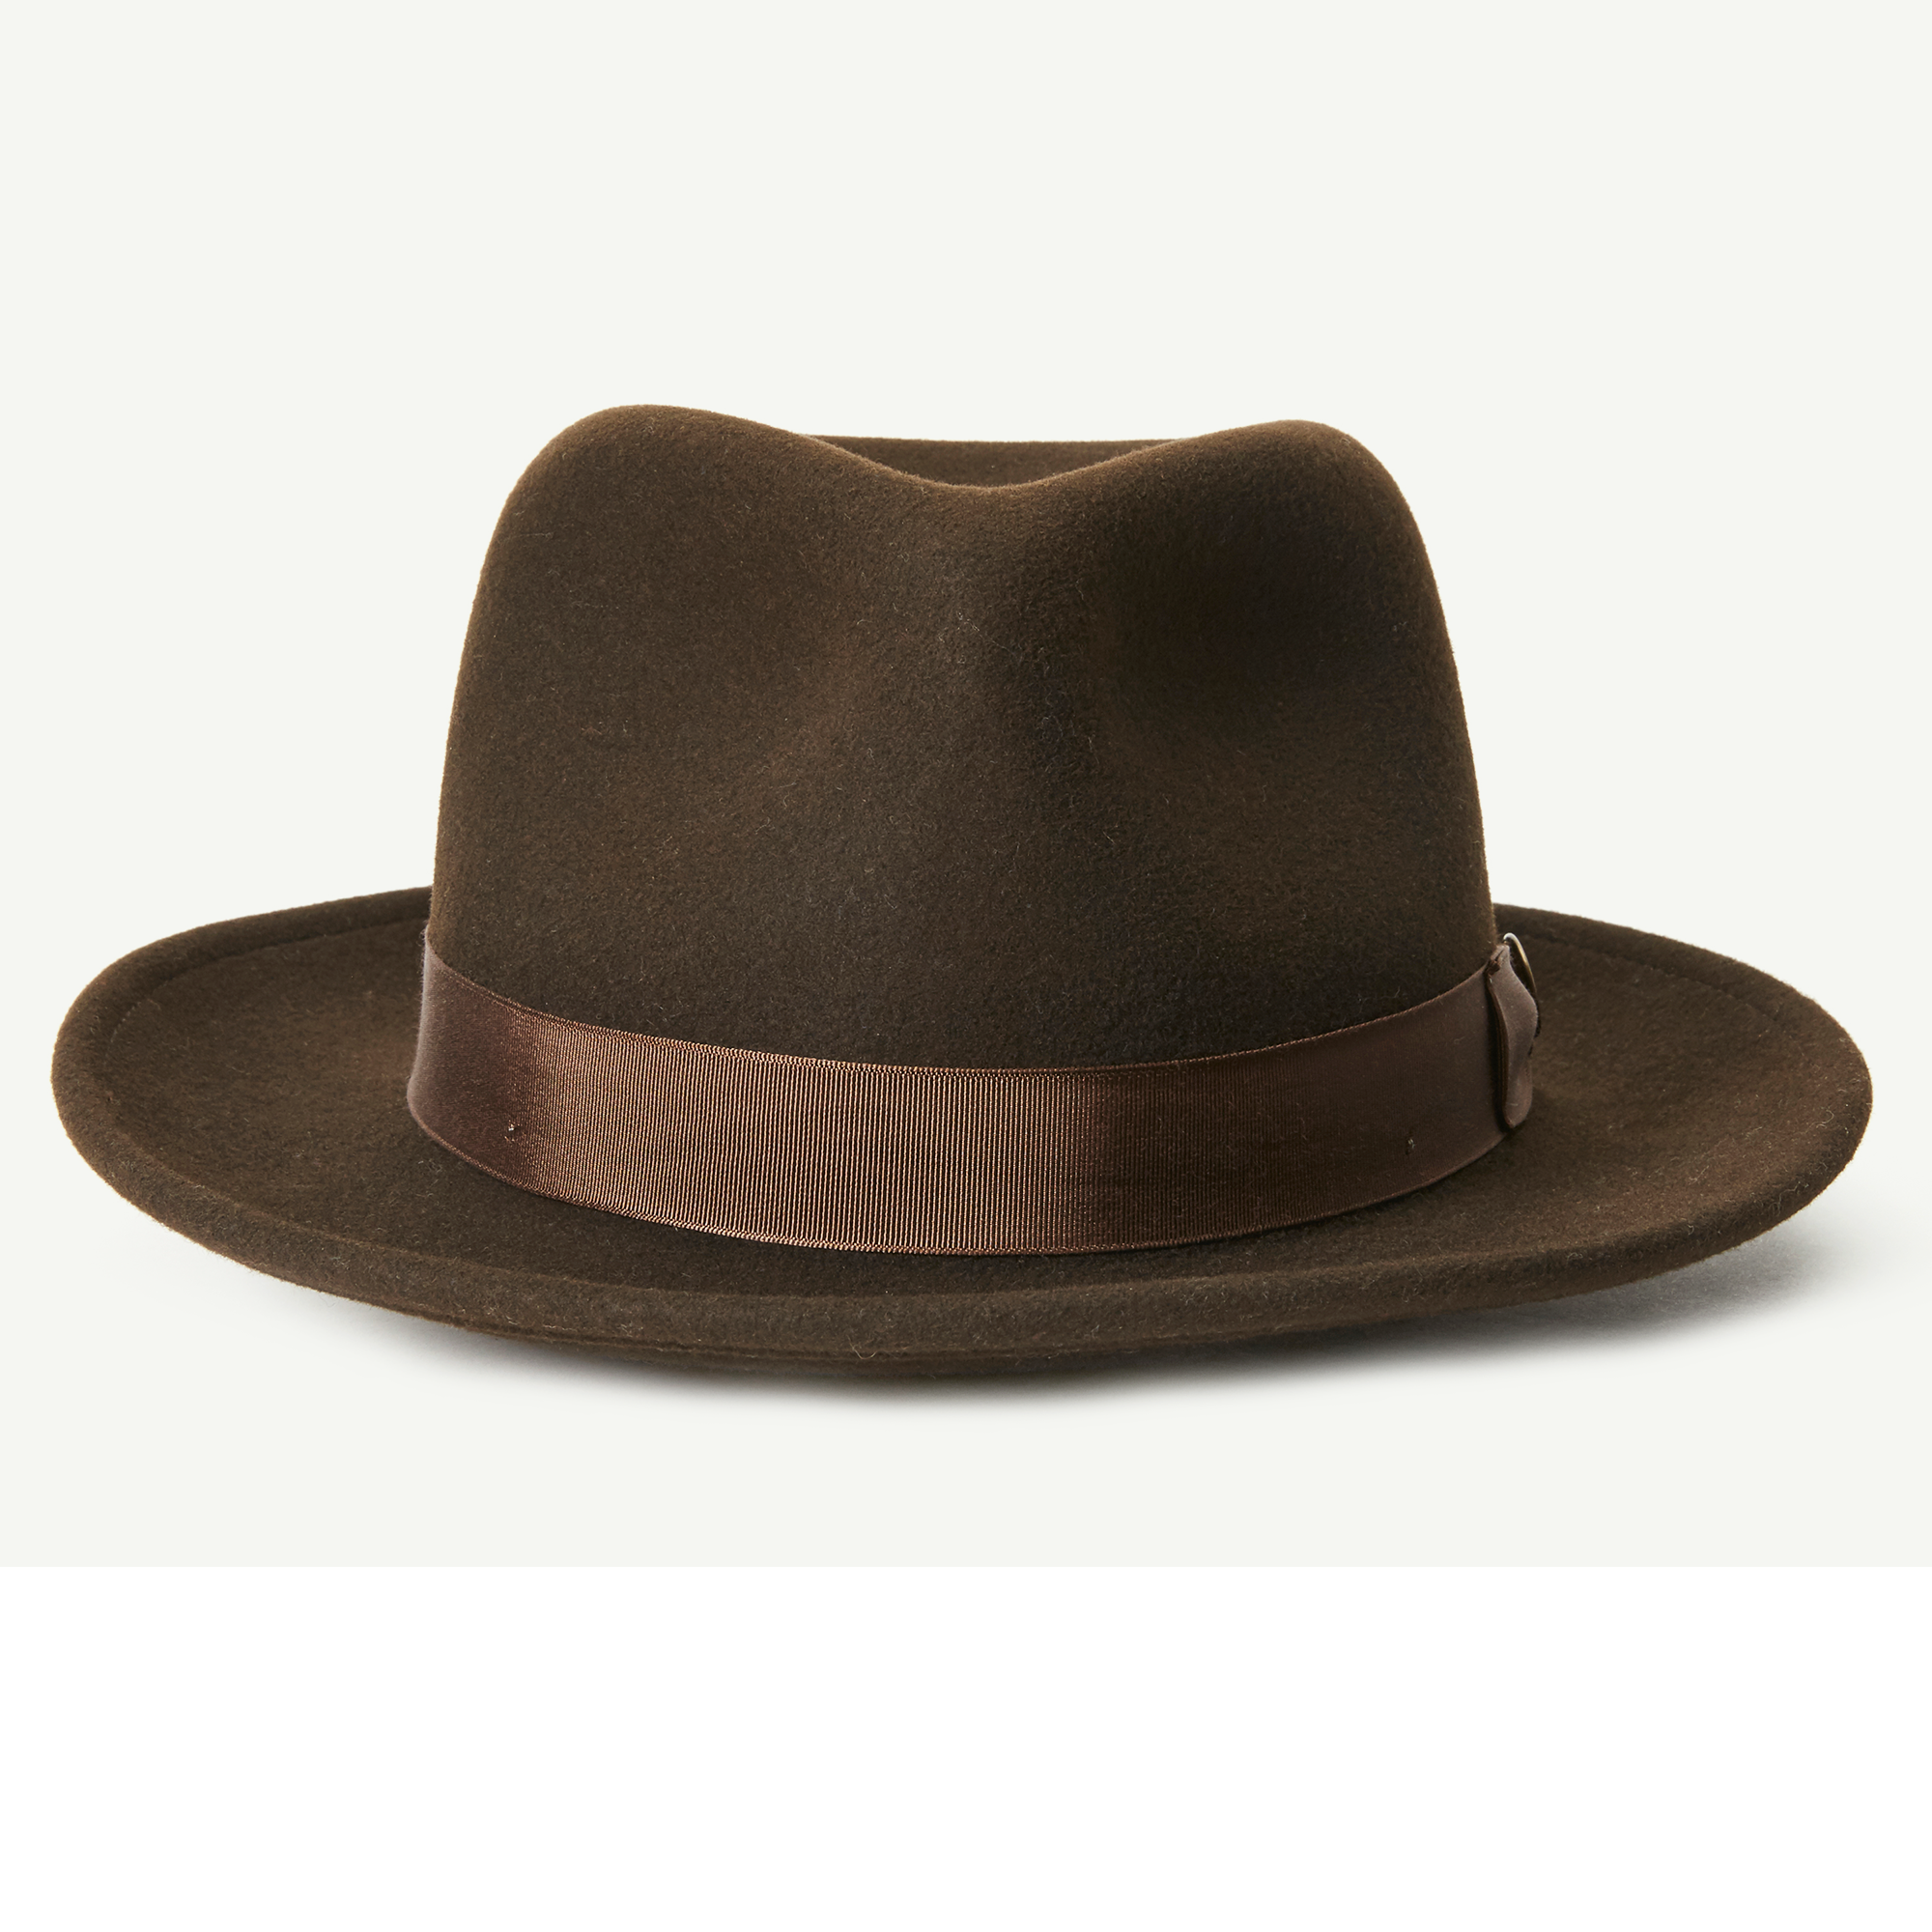 958d189017ff3 The Doctor Felt Fedora Hat